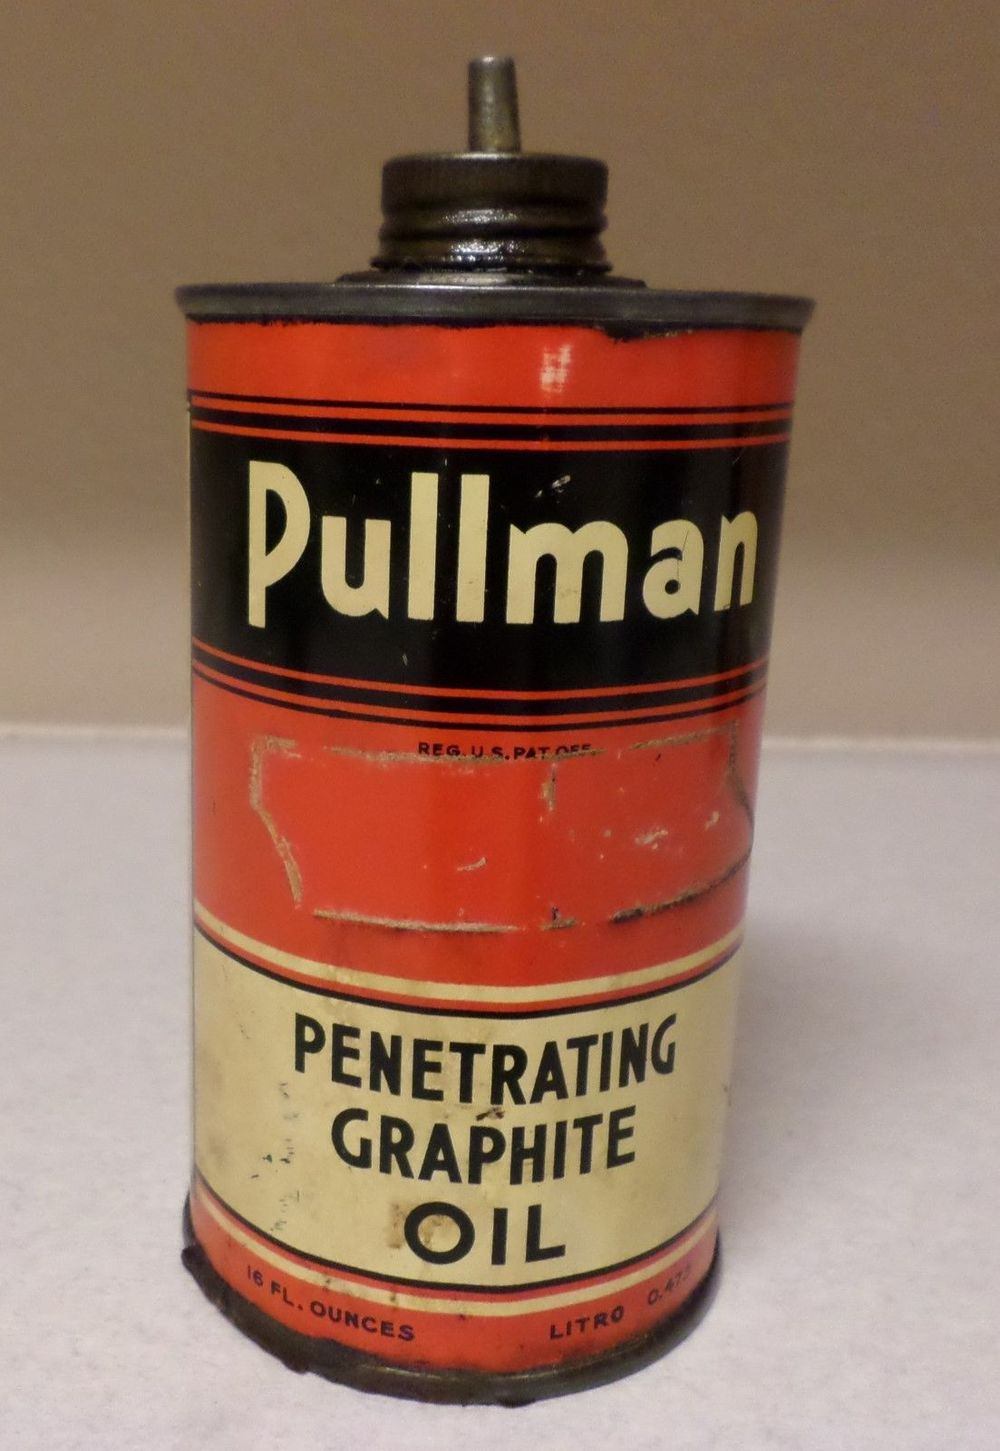 Pullman Penetrating Graphite Oil